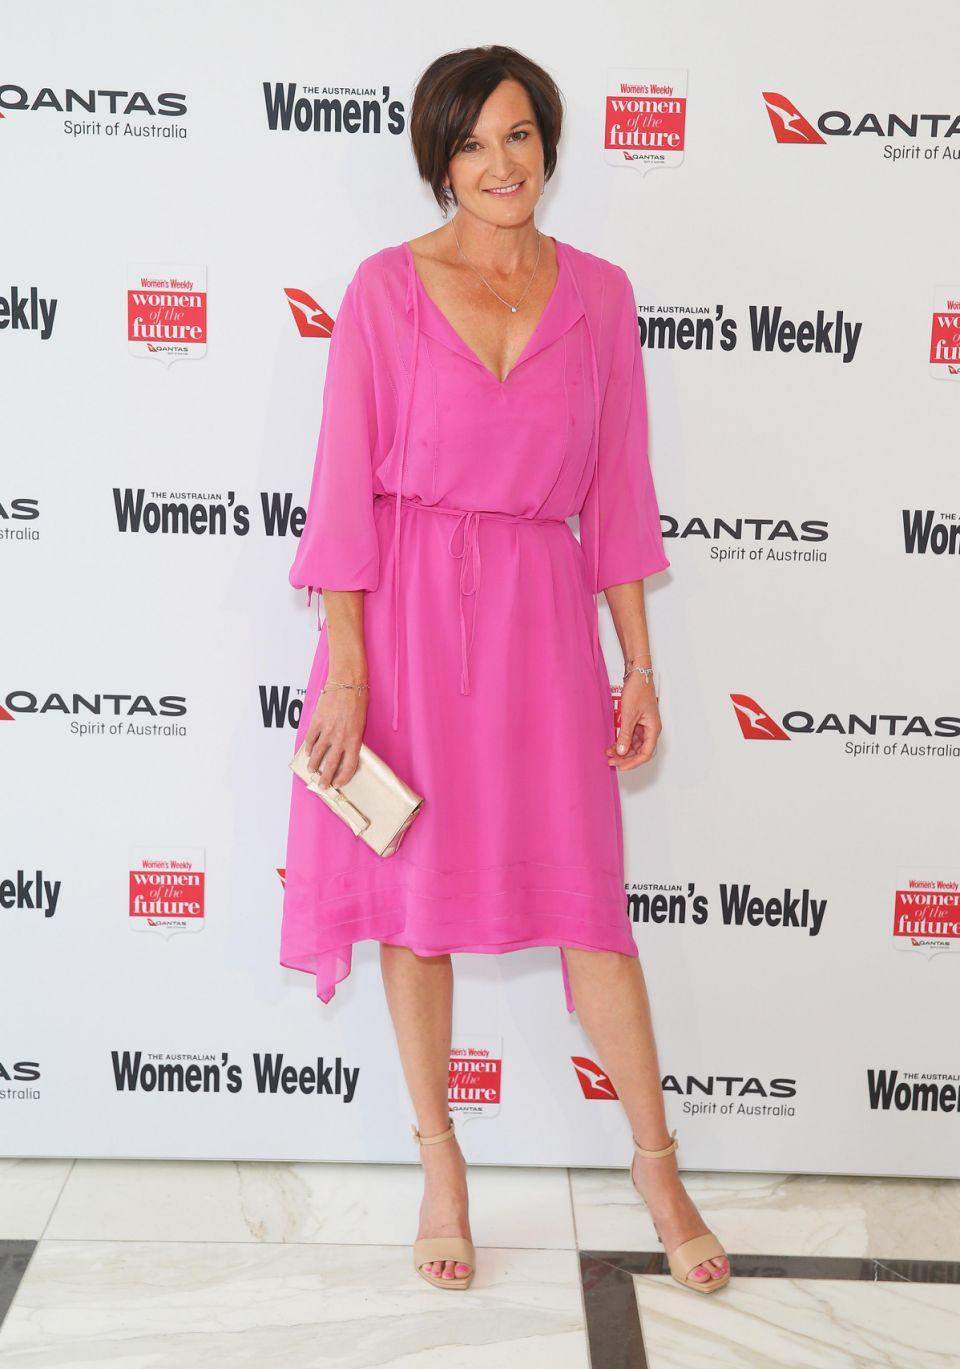 Cassandra Thorburn has stepped out looking pretty in pink at the Women in Future Awards. It is her first public appearance since her split from Karl. Source: Getty